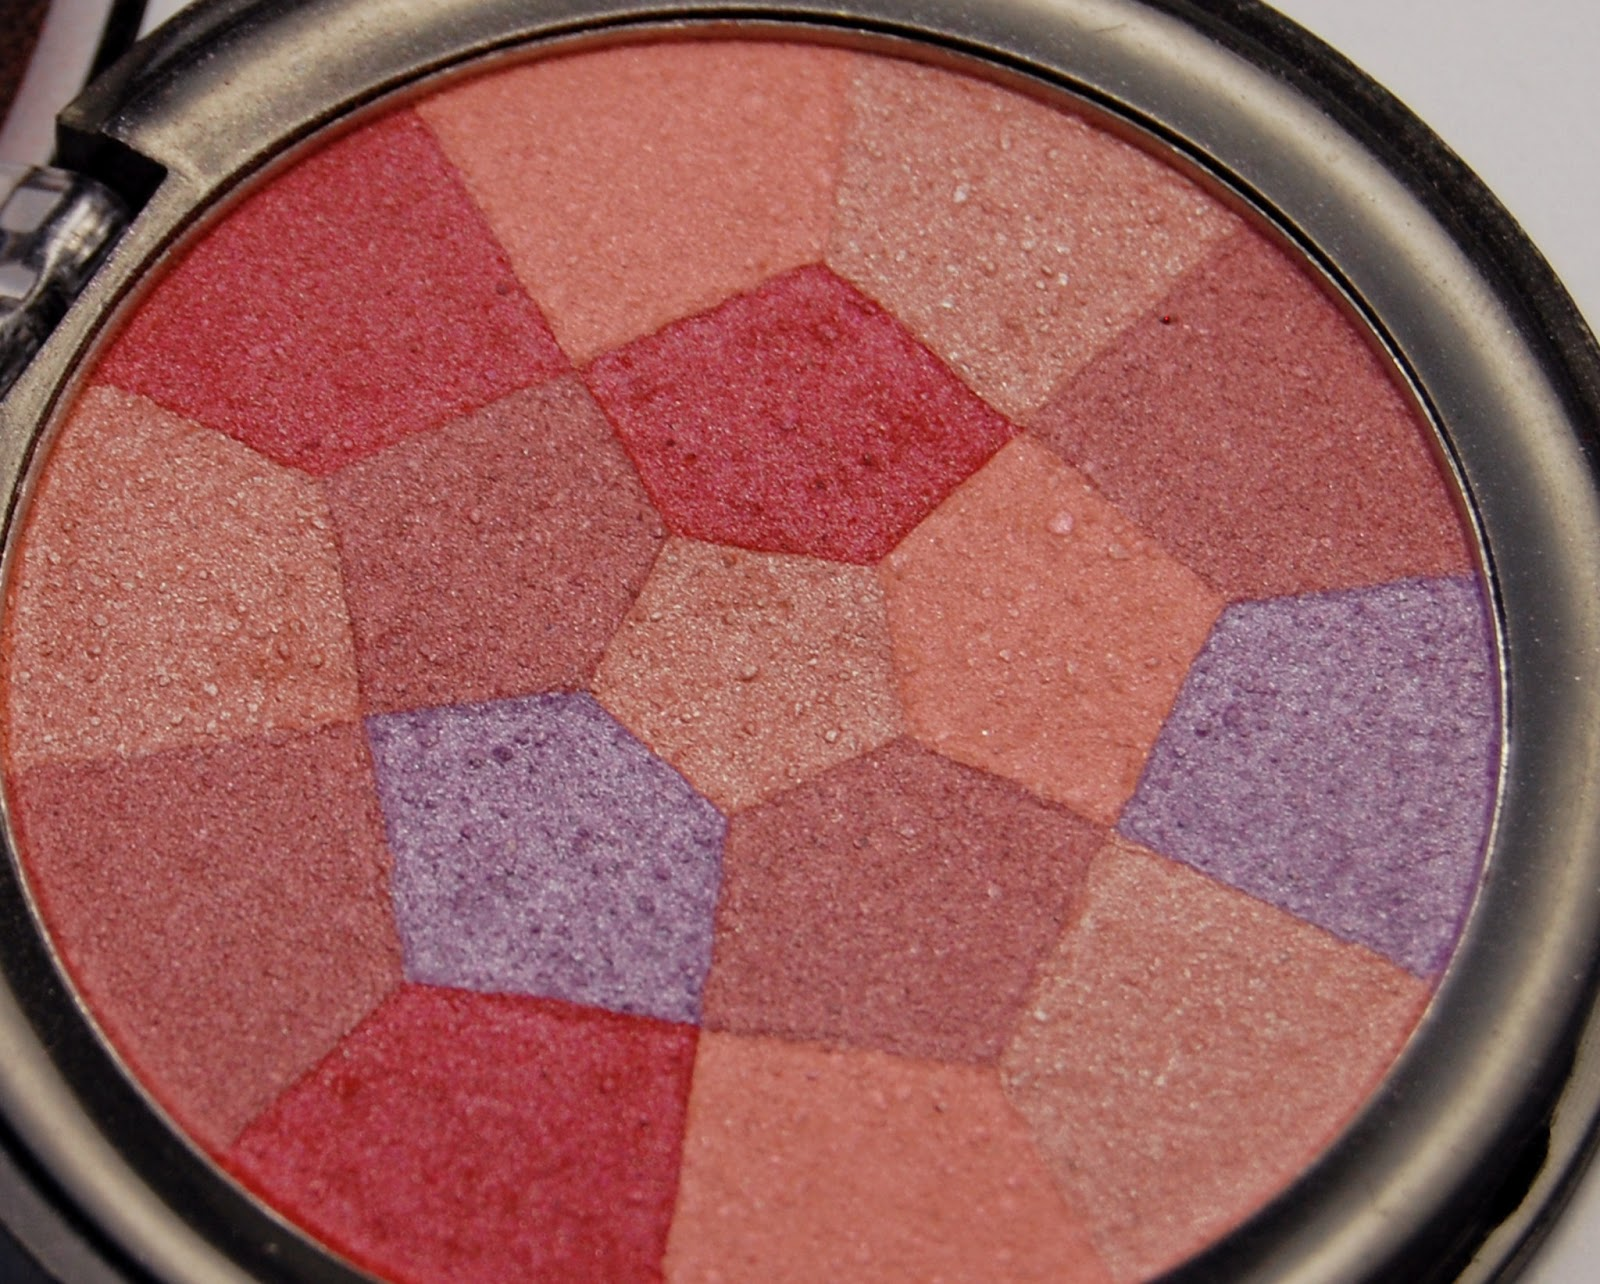 MUA Mosaic Blush English Rose, Shade 3